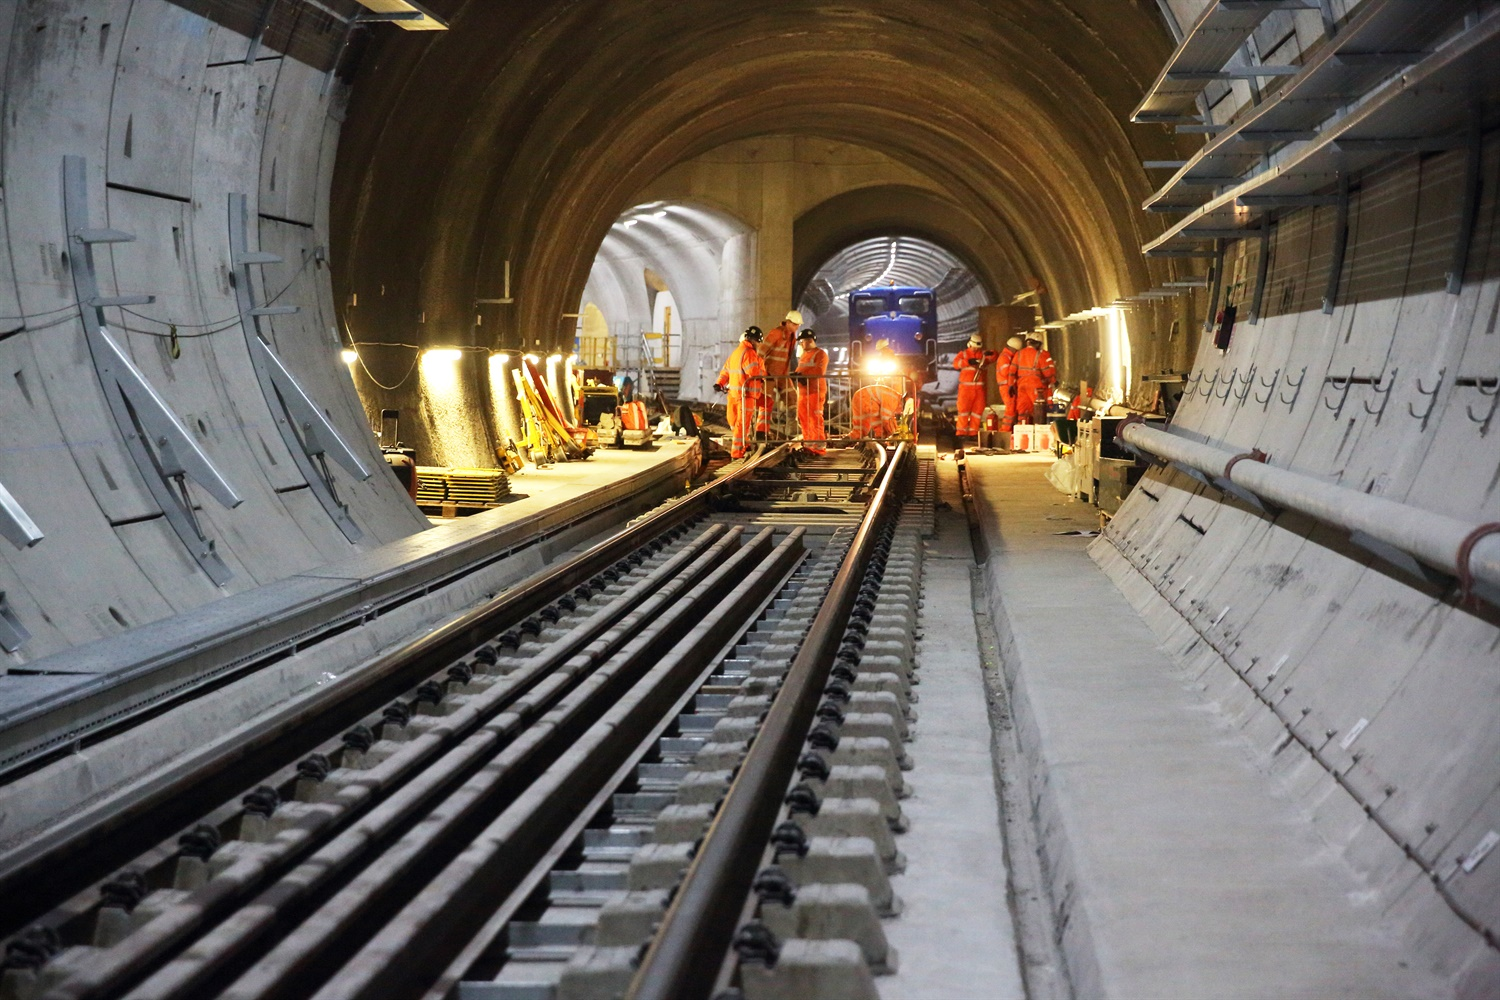 HS1 and Crossrail suppliers admit to running 'illegal cartel' for 7 years